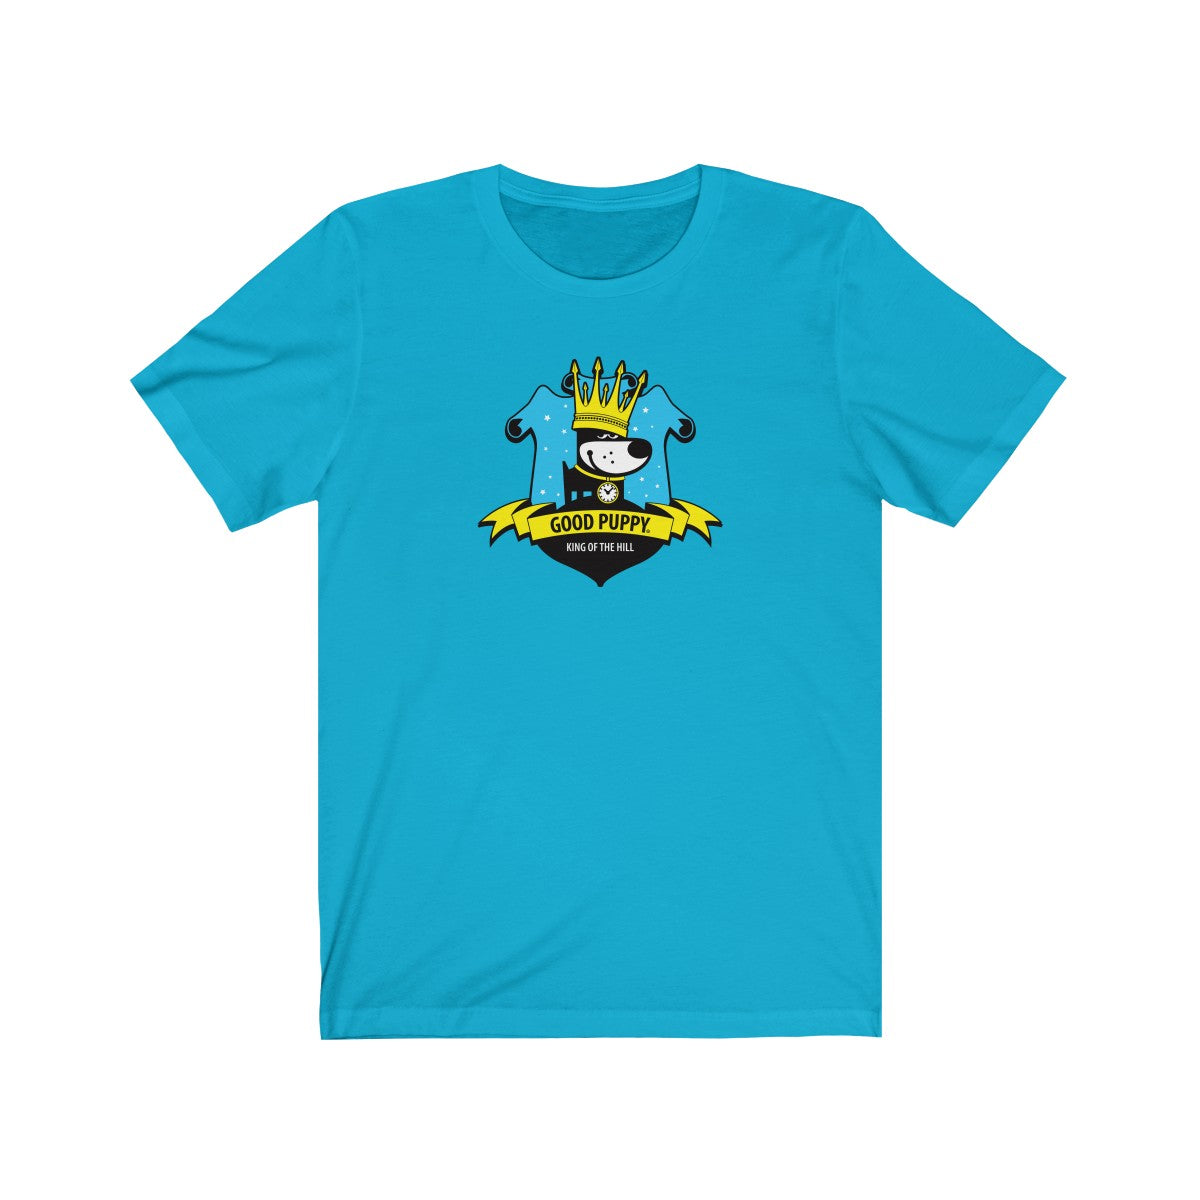 King Of The Hill . Unisex Cotton Tee